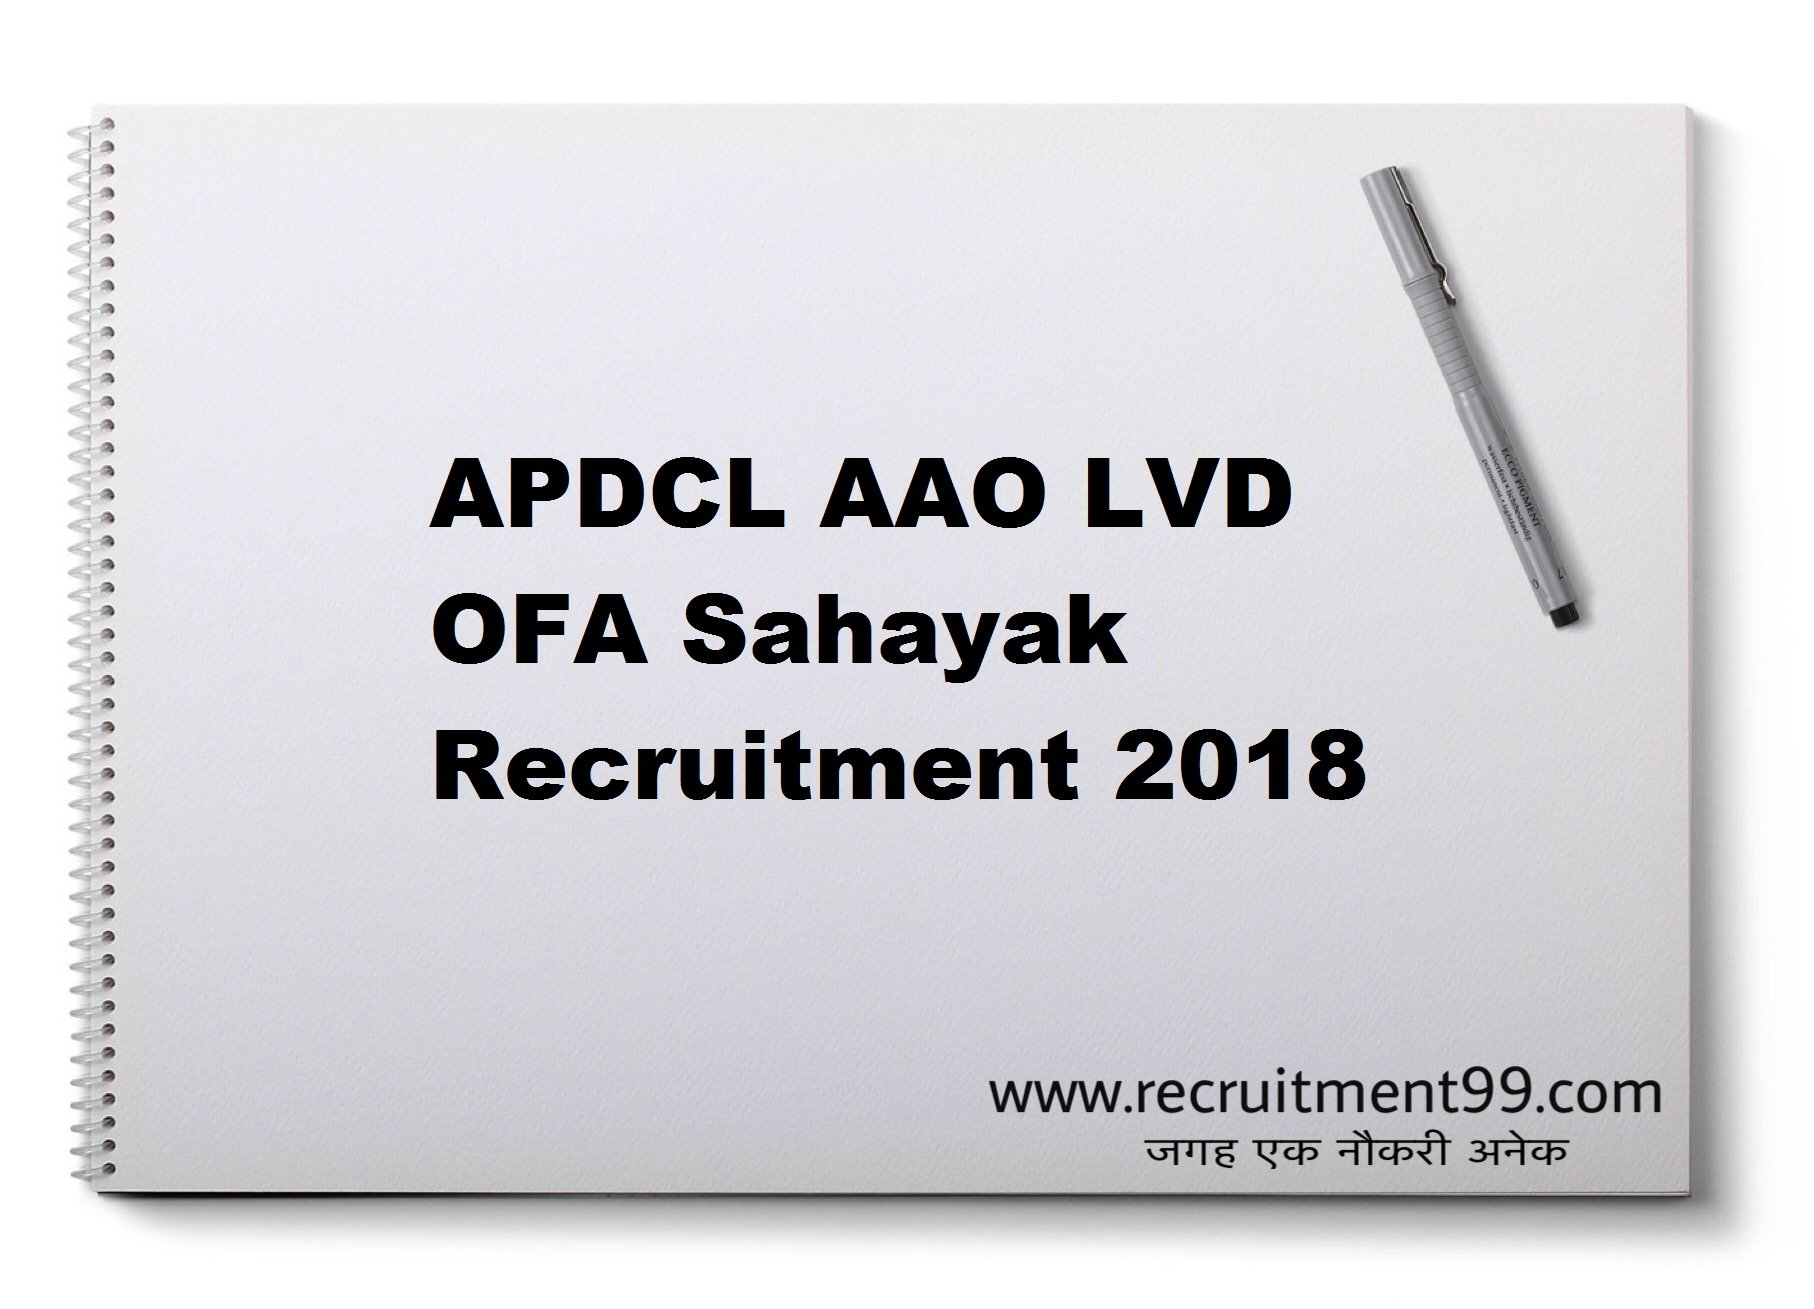 APDCL AAO LVD OFA Sahayak Recruitment Admit Card Result 2018